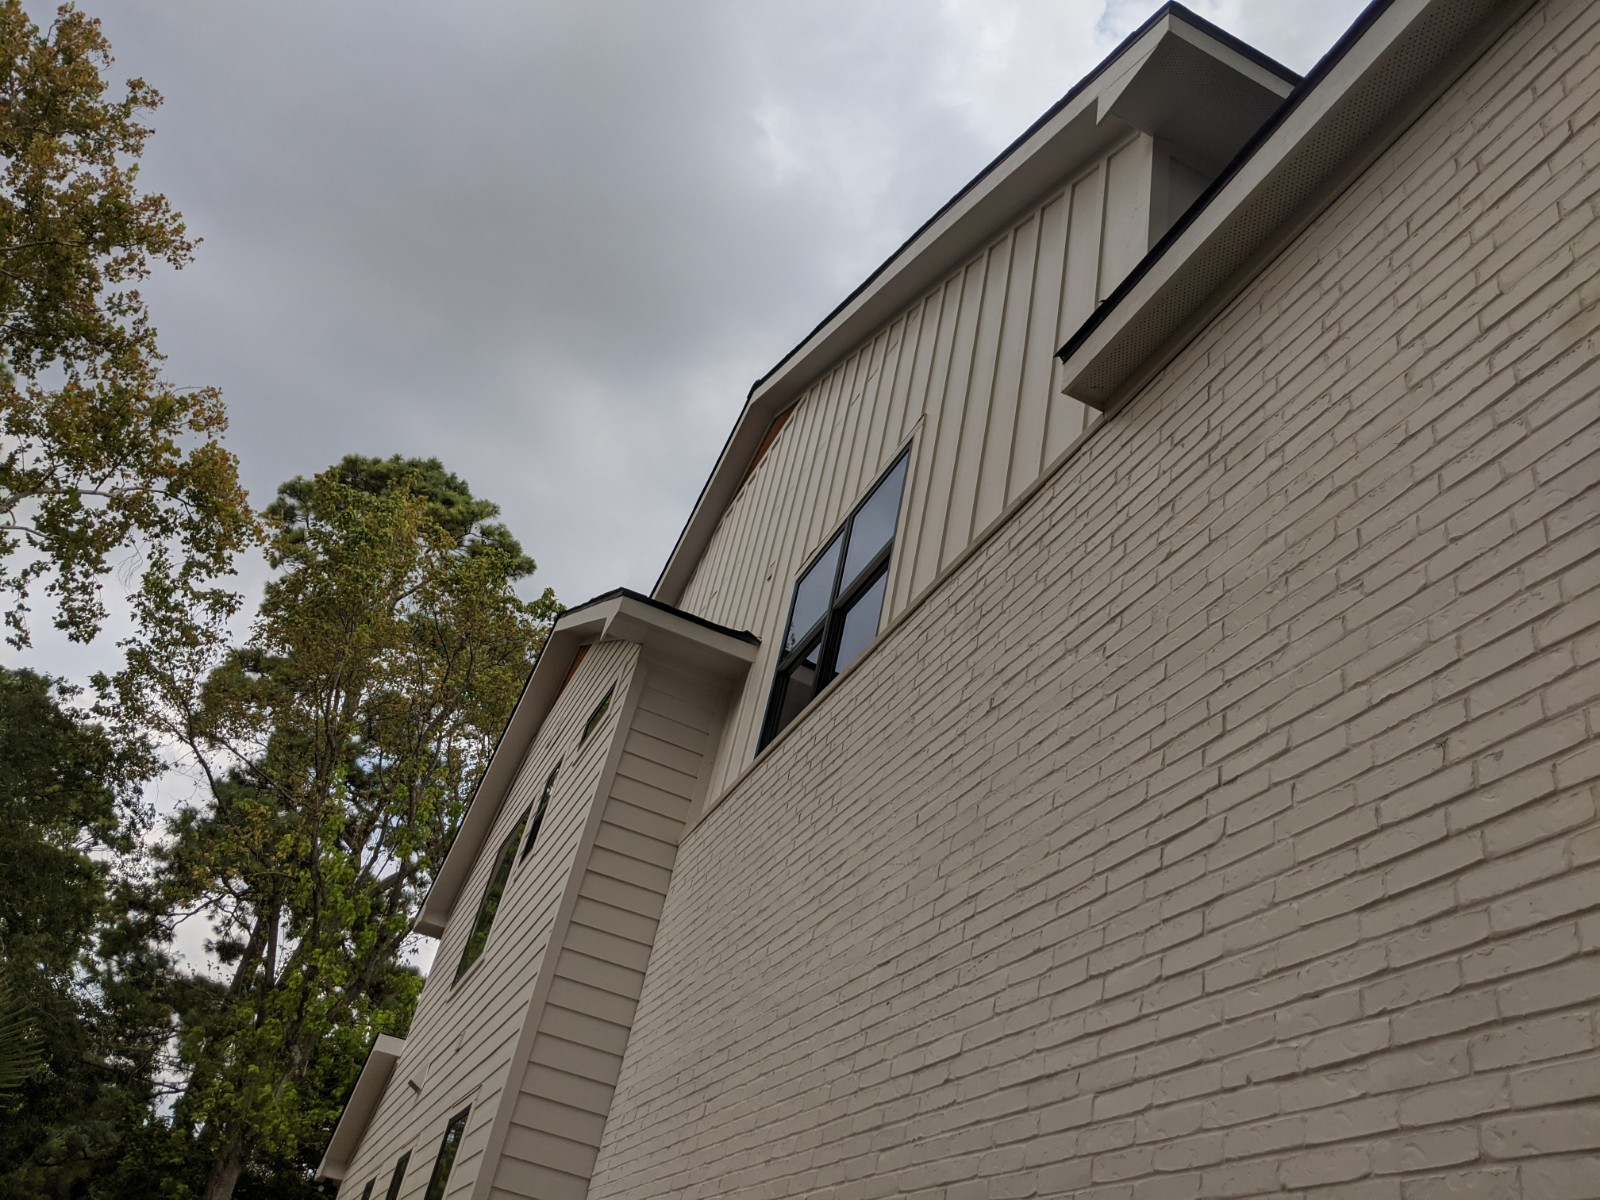 Window Cleaning Company for Homes in Houston